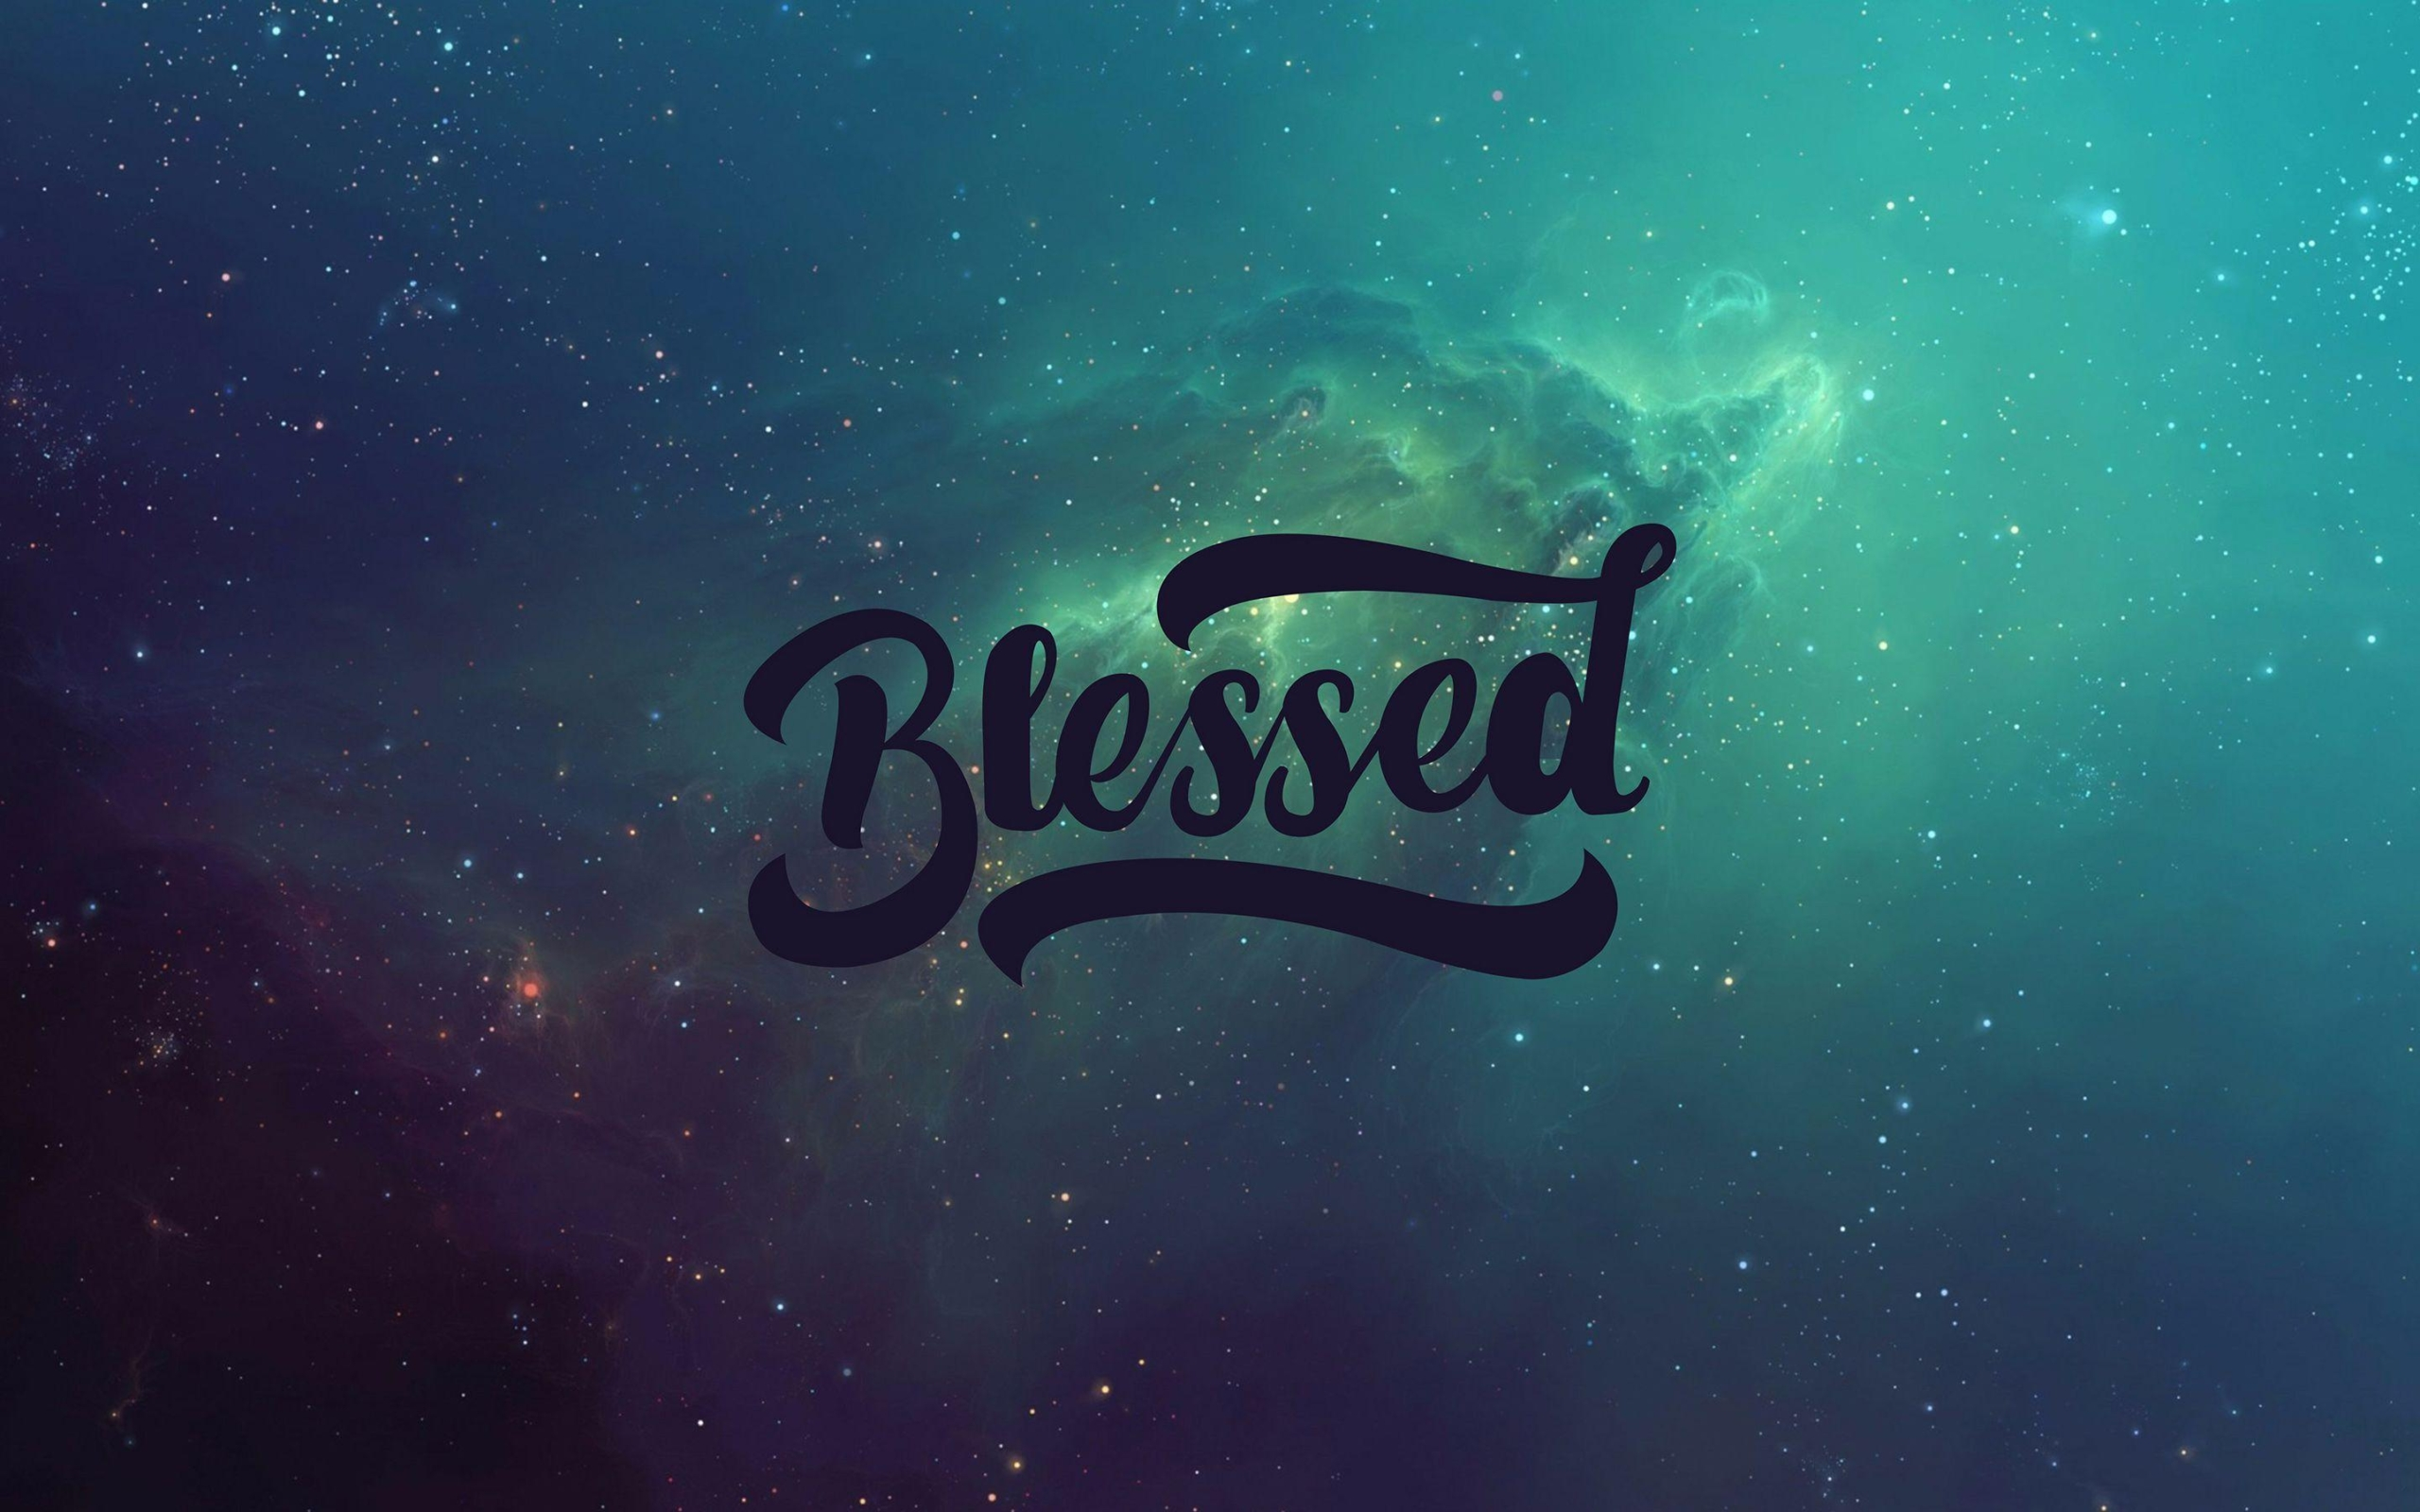 B Blessed wallpaper – Luxury Background for Your Bedroom